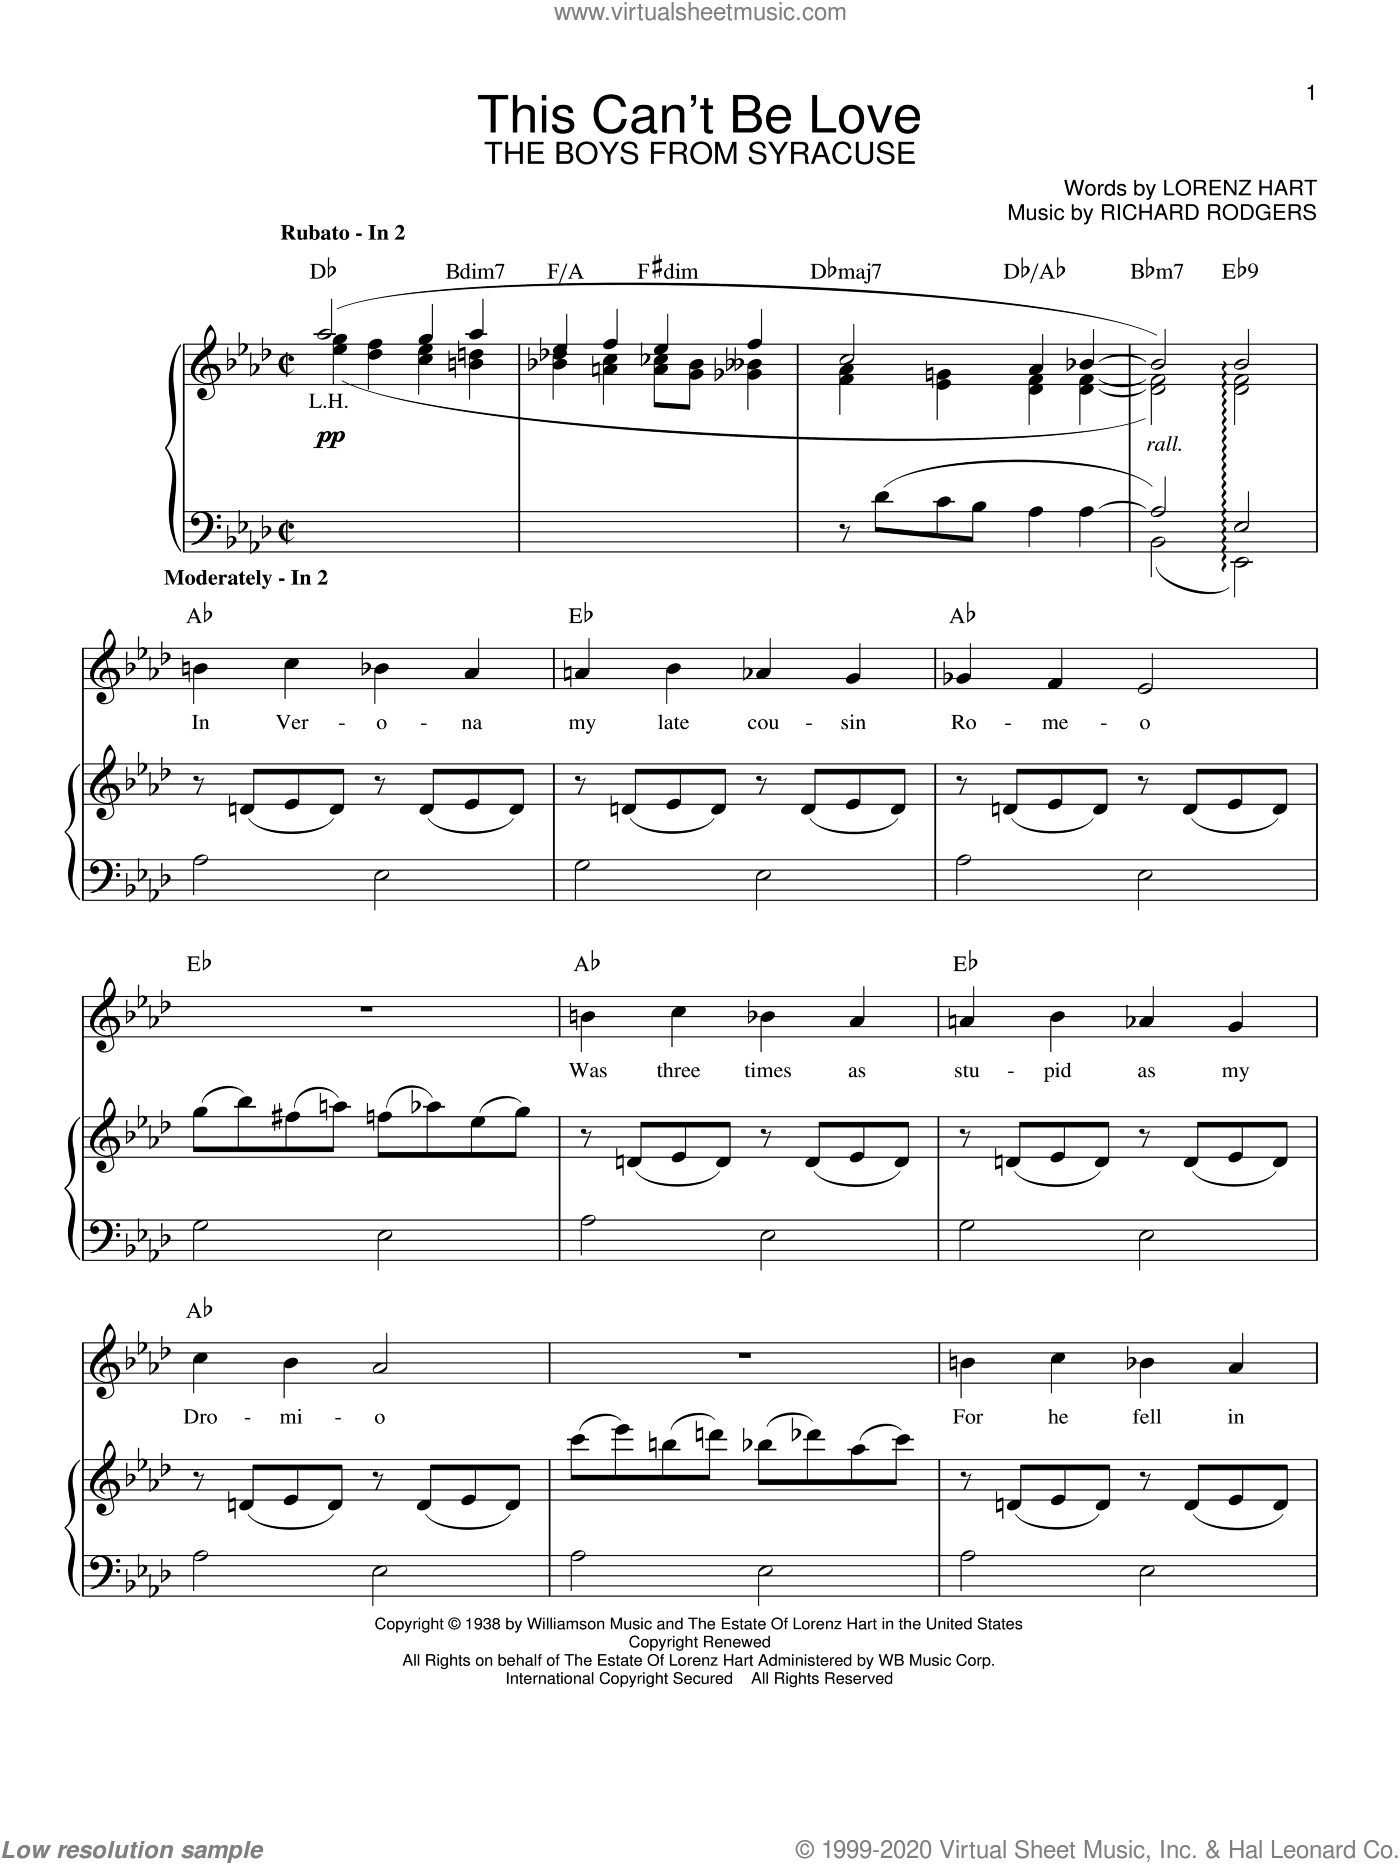 This Can't Be Love sheet music for voice and piano by Rodgers & Hart, Lorenz Hart and Richard Rodgers, intermediate skill level